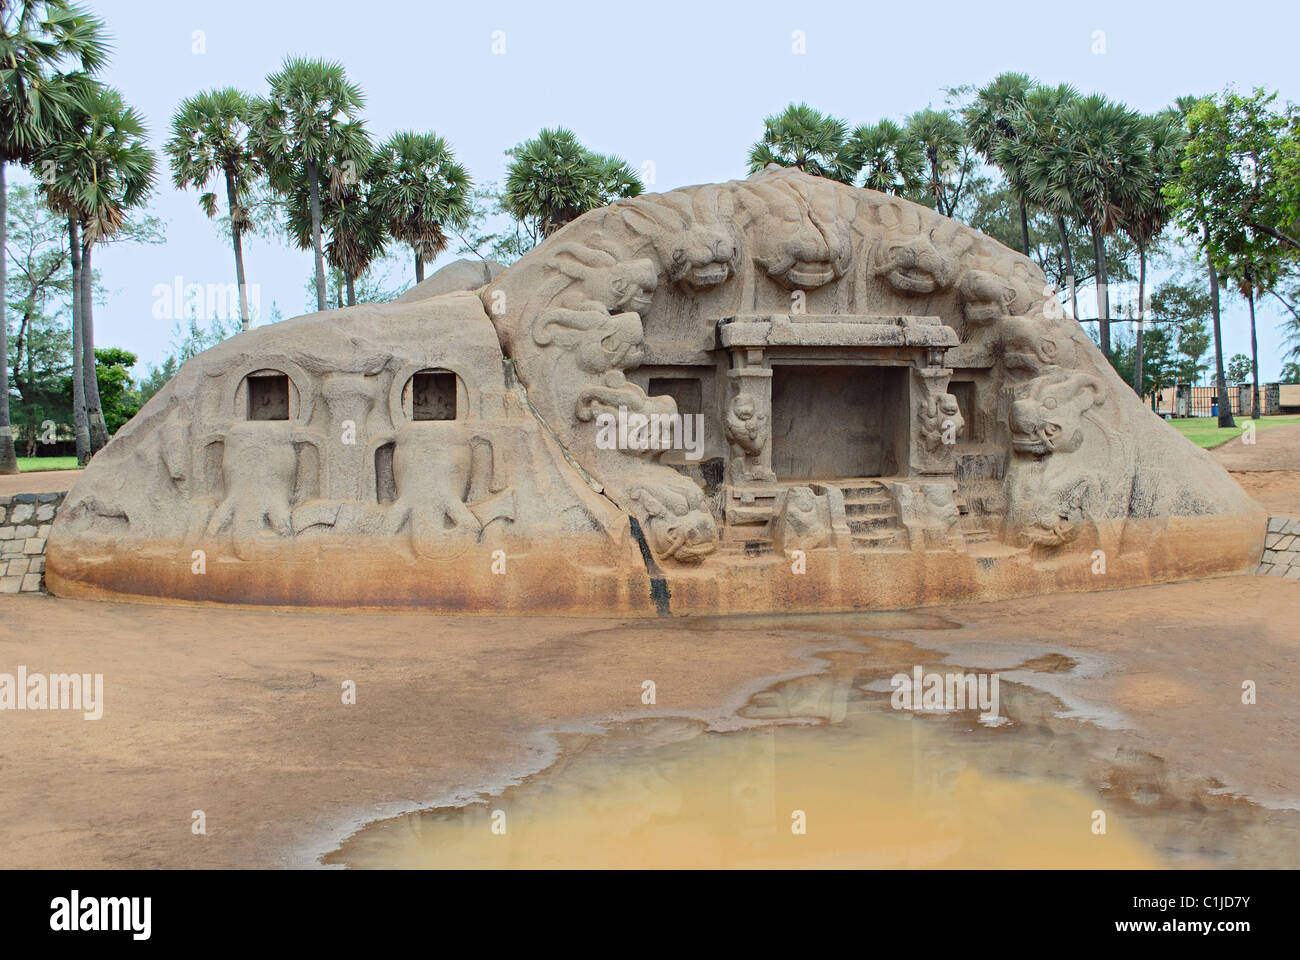 The Tiger Cave, a rock-cut Hindu temple complex located in the hamlet of Saluvankuppam near Mahabalipuram in Tamil - Stock Image